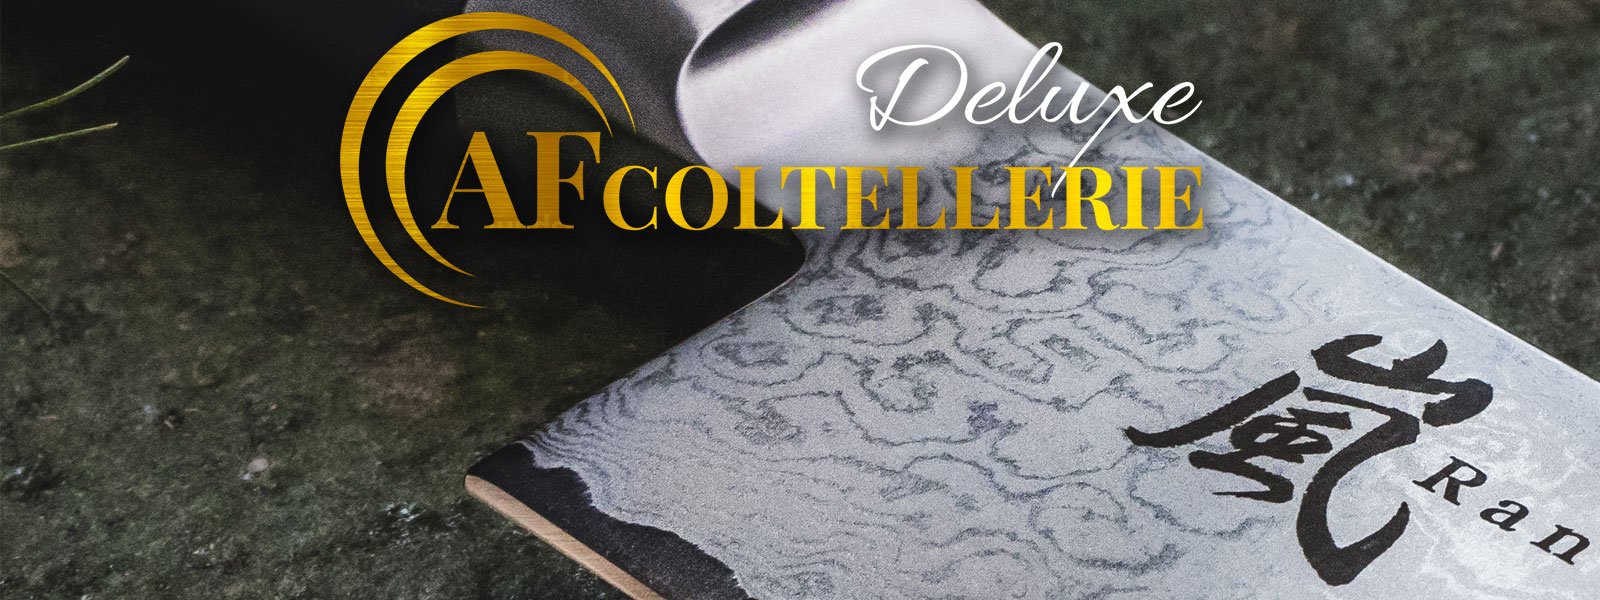 Afcoltellerie deluxe